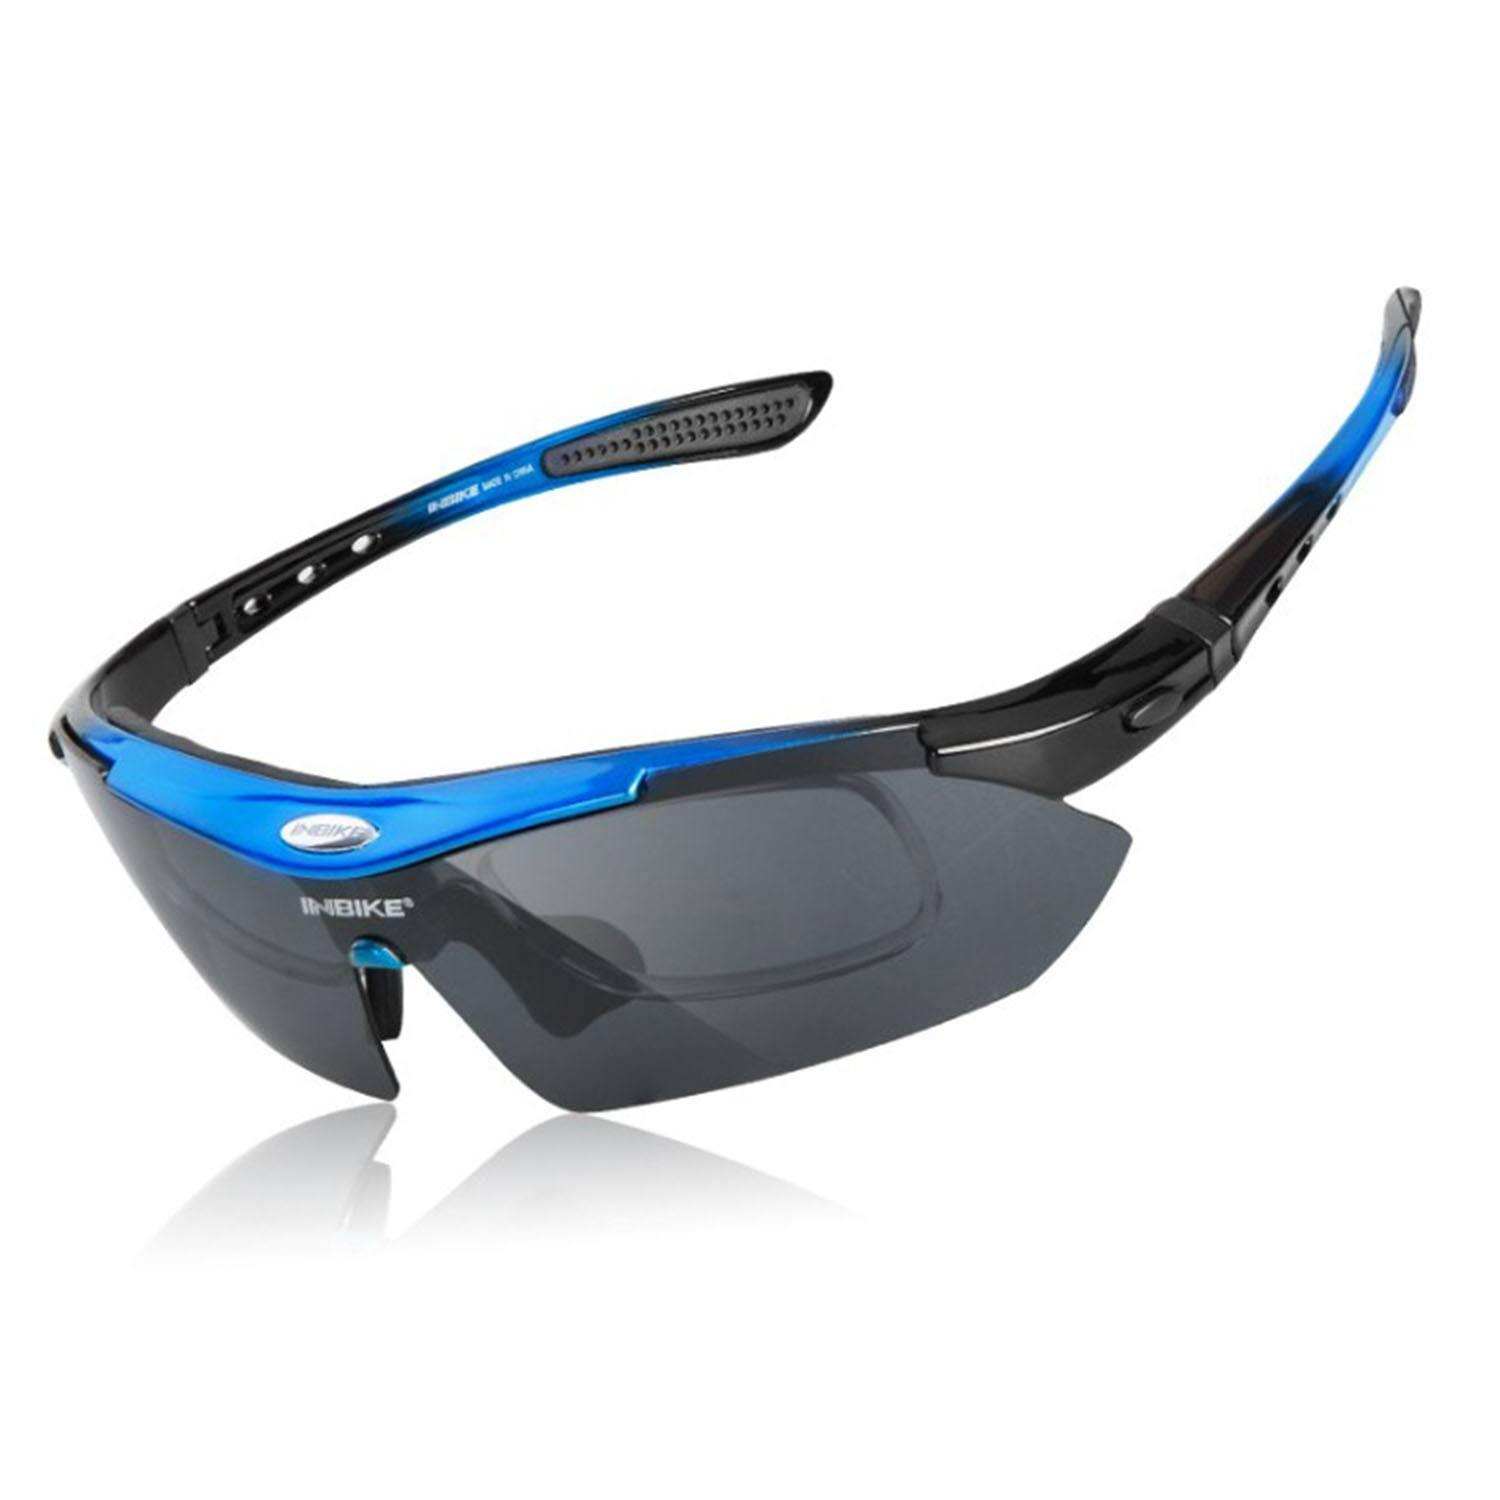 4e95bb784cb Good Deal-INBIKE Cycling Glasses UV Proof Polarized 5 Lens Frame Eyewear  Bicycle Glasses Outdoor Sport Goggle Drive Sunglasses Cycling Eyewear Cheap  Cycling ...